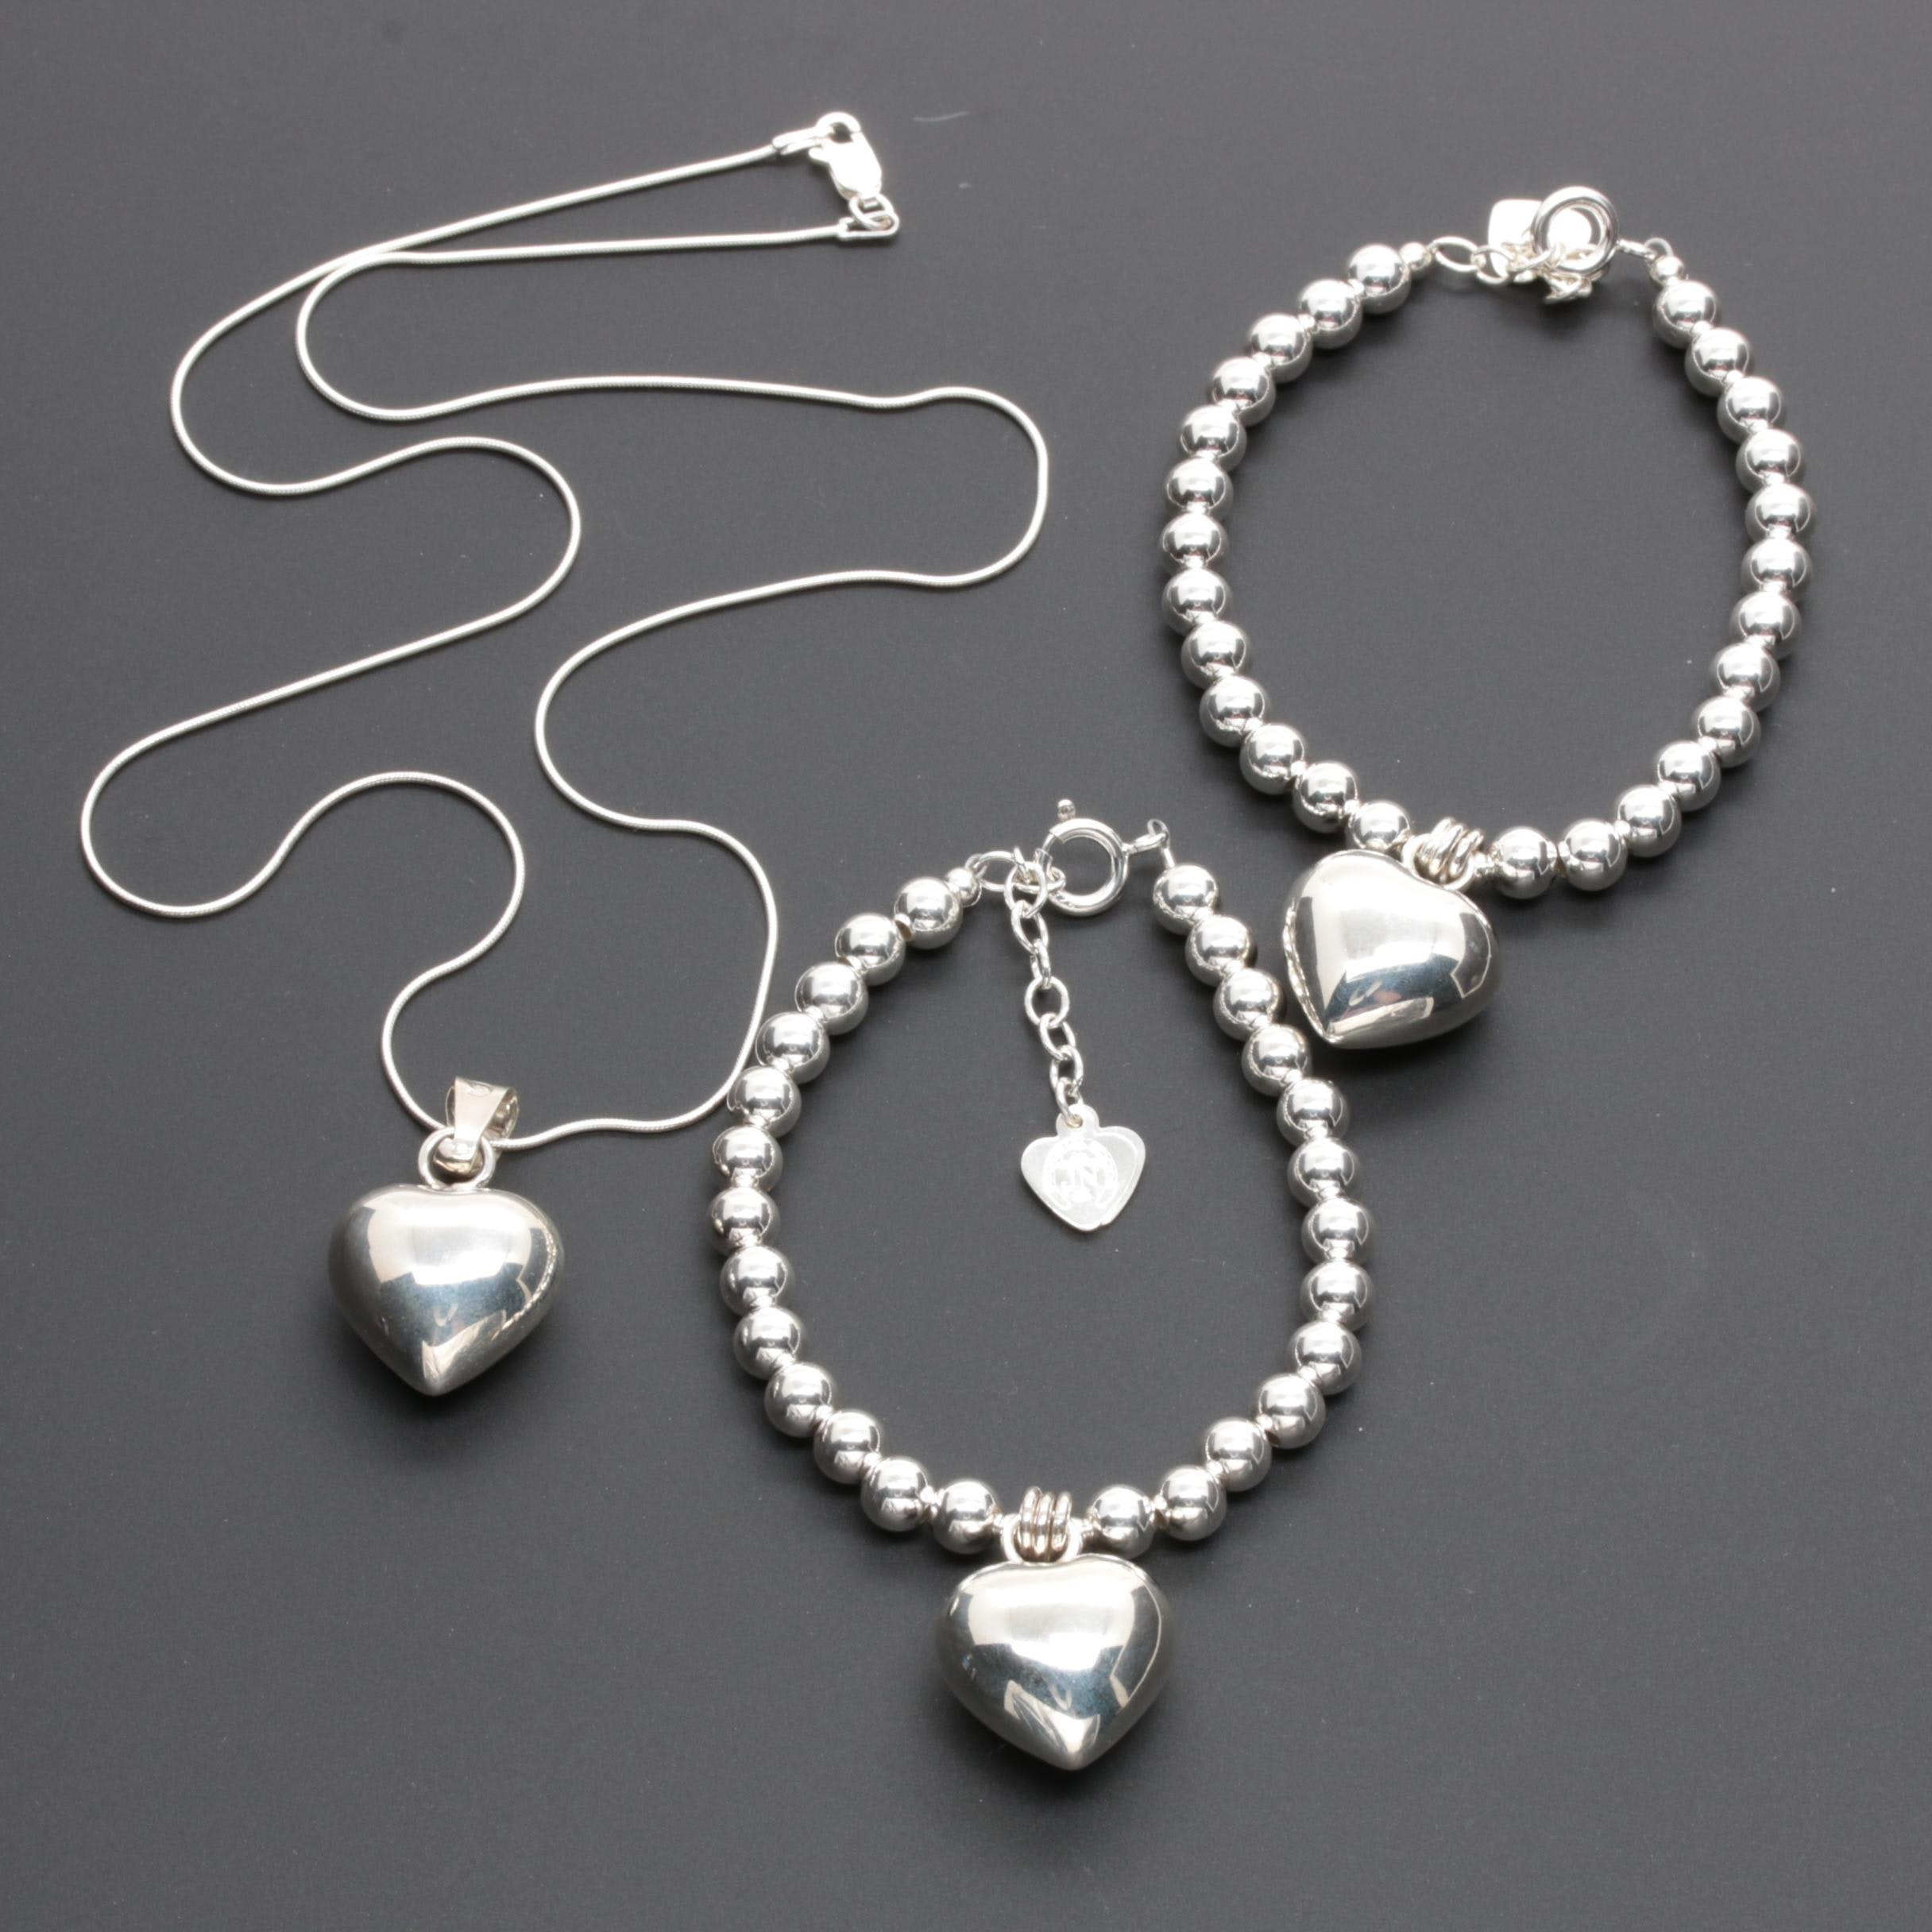 Sterling Silver Puffed Heart Charm Necklace and Matching Beaded Bracelets